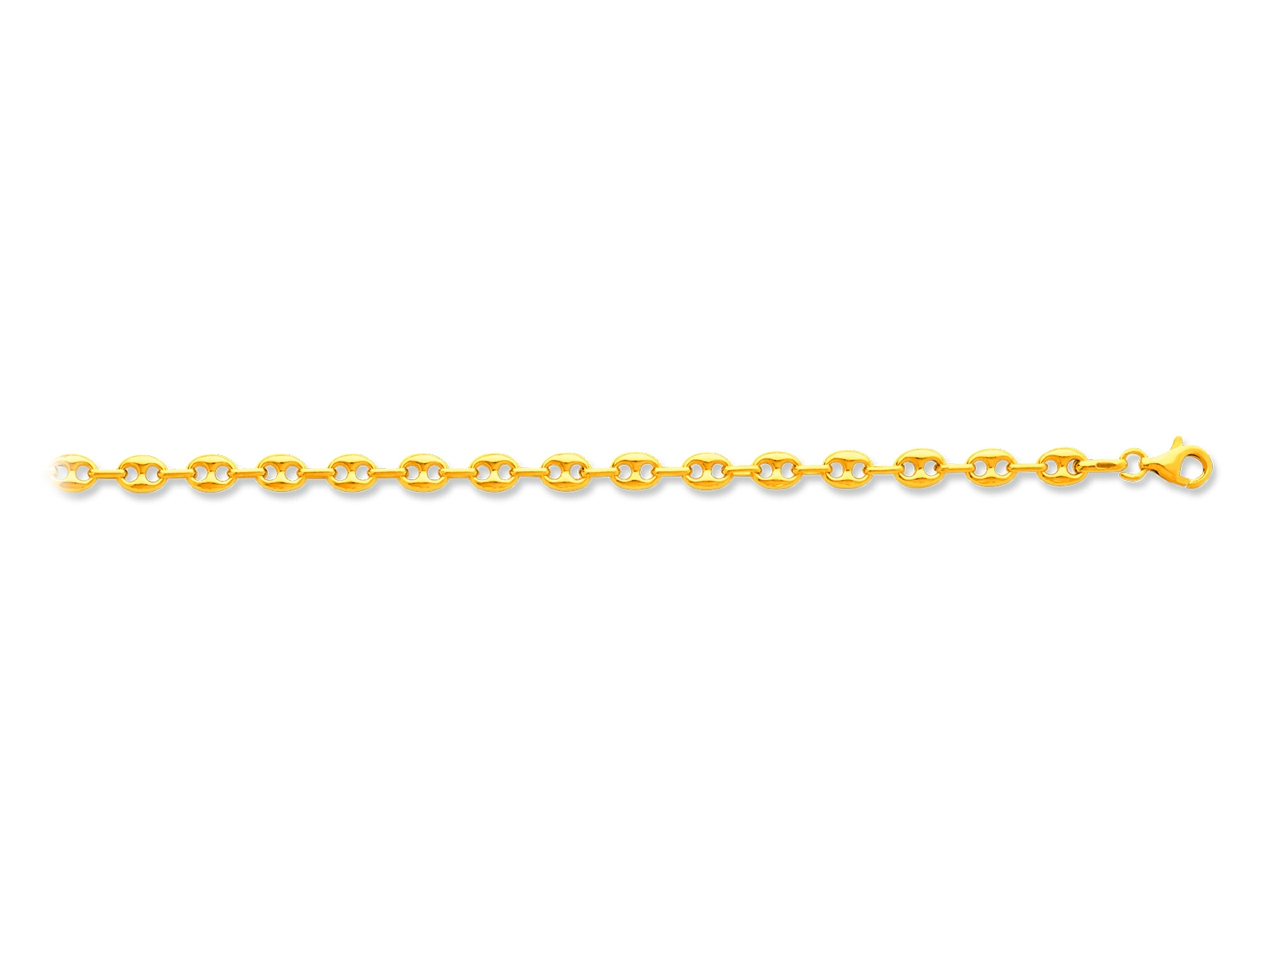 Collier maille grains de café creux, Or jaune 18k, 4,7 mm, 50 cm